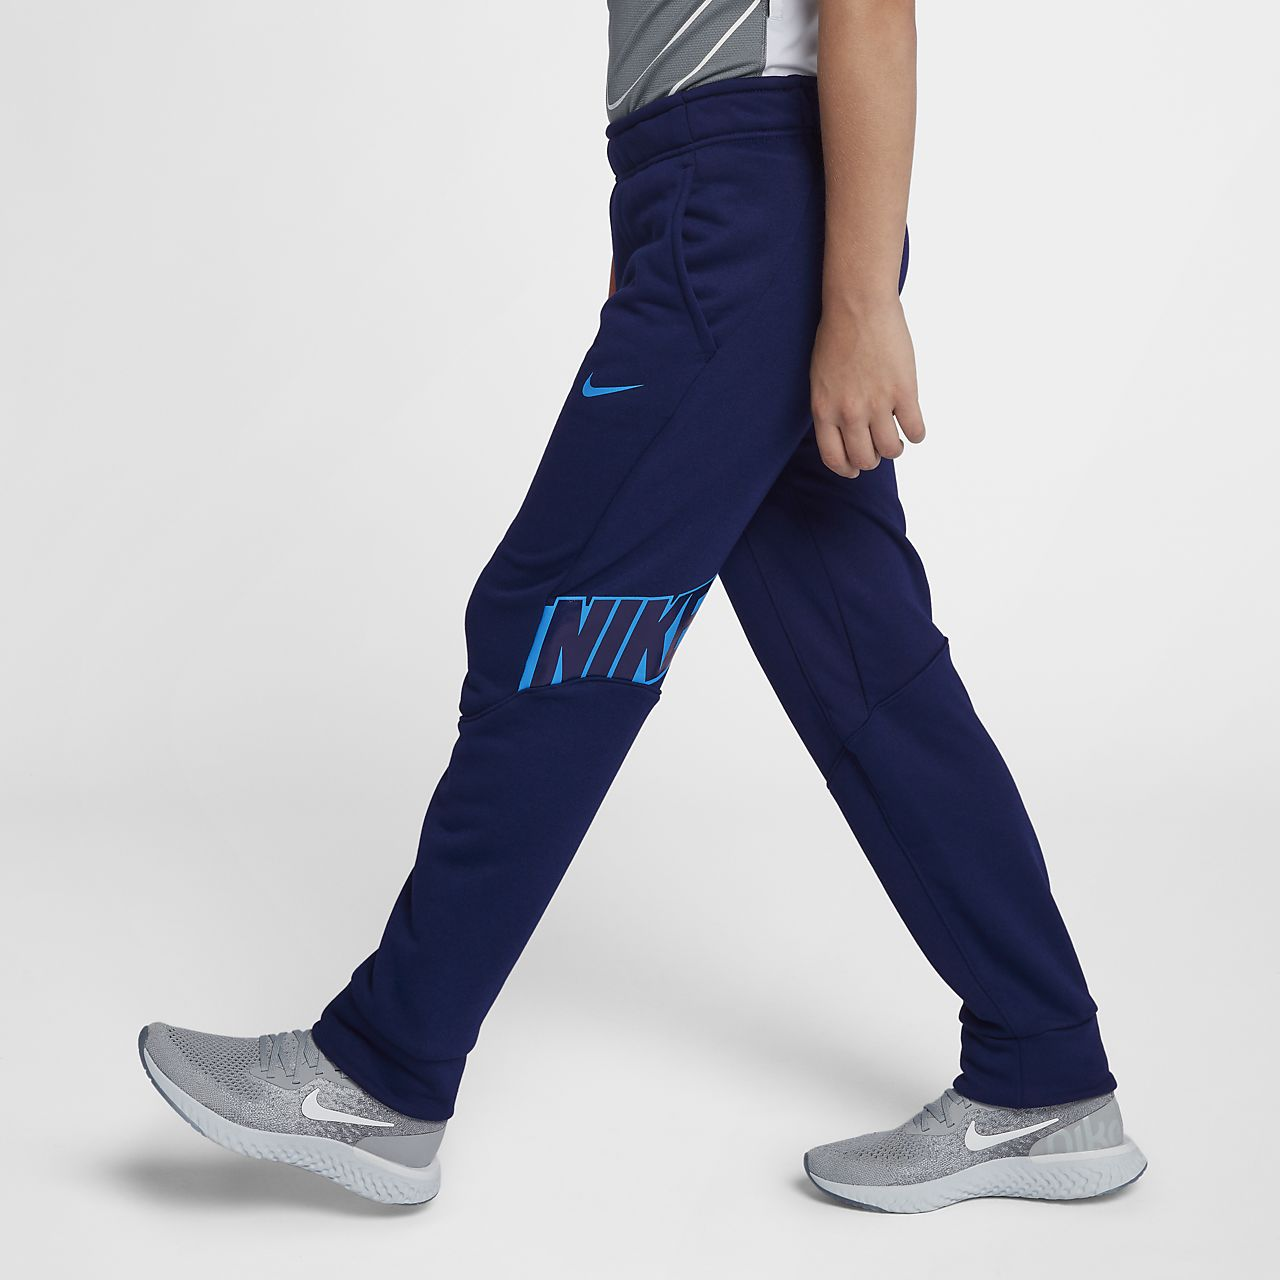 21fd8888da6e Nike Dri-FIT Big Kids  (Boys ) Training Pants. Nike.com